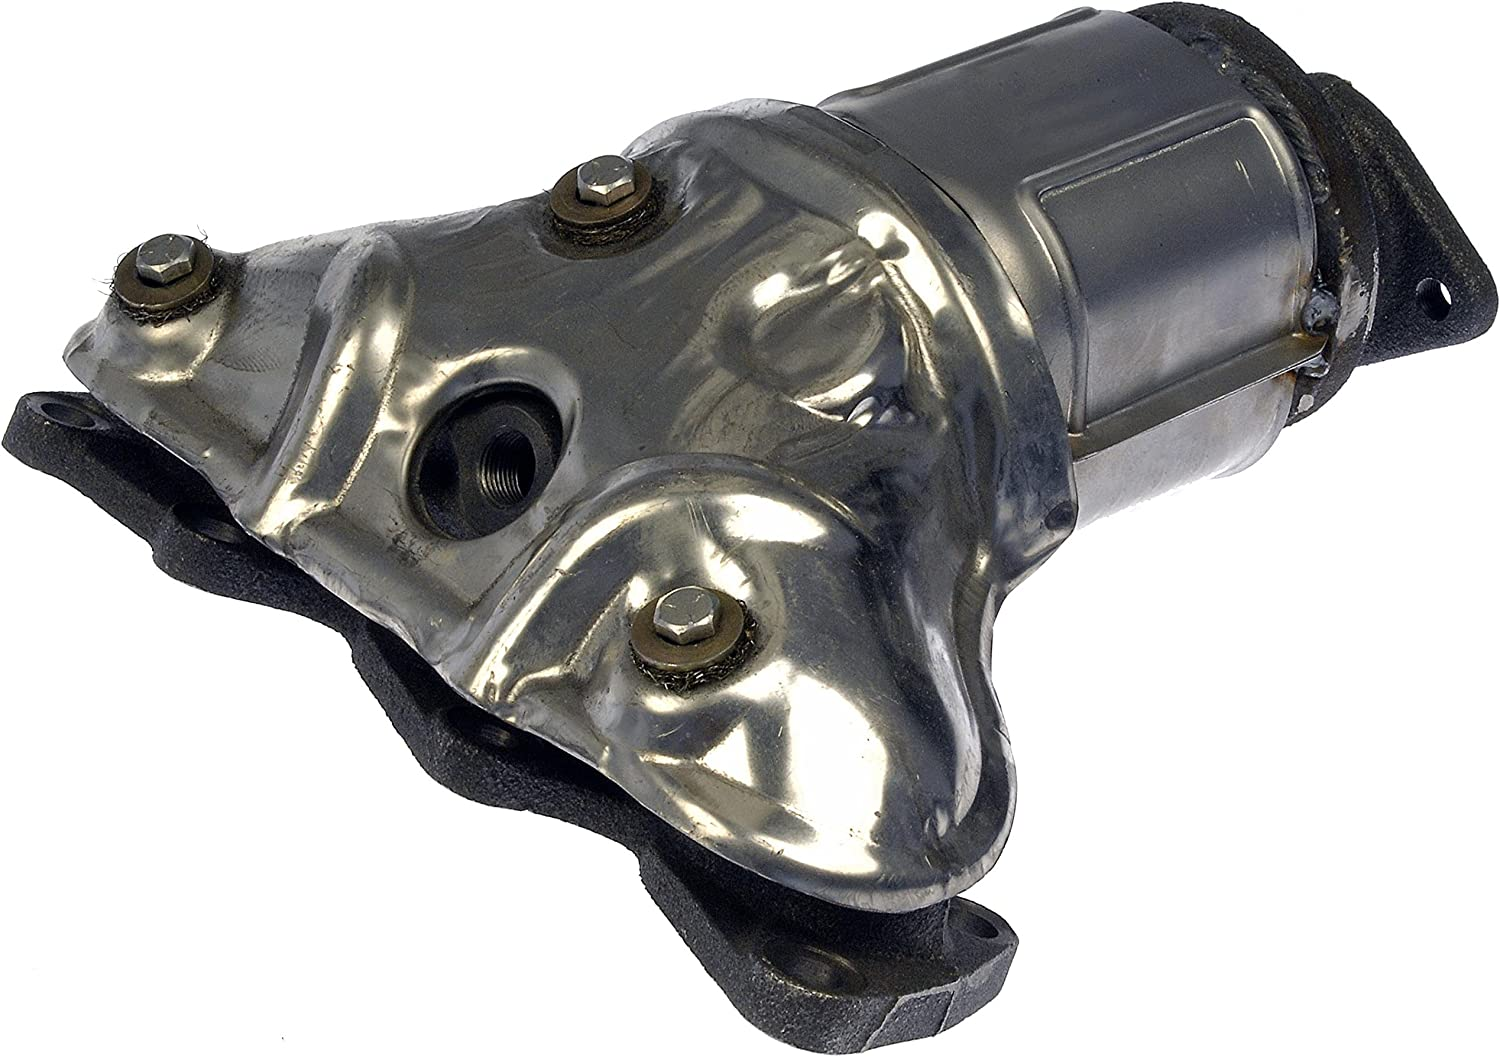 Dorman 674-853 Exhaust Manifold with Integrated  Catalytic Converter Non-CARB Compliant